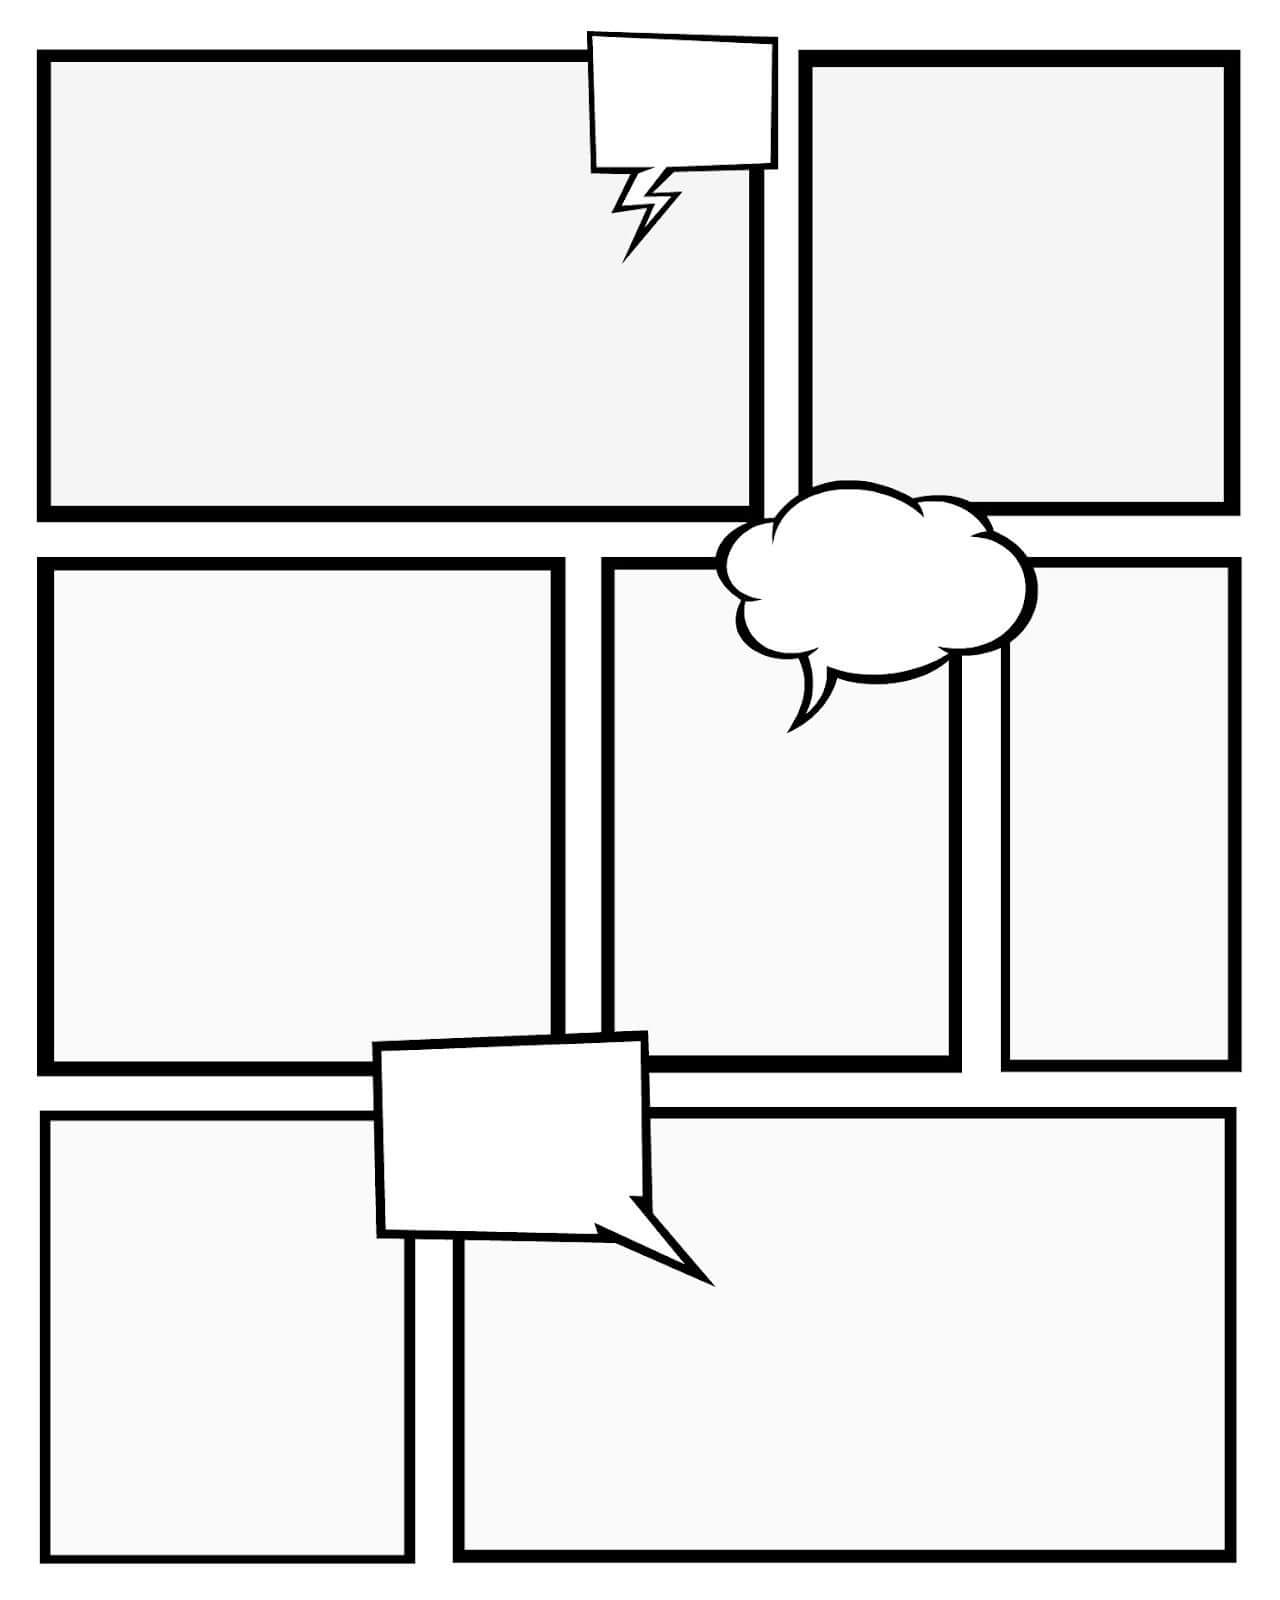 School Hasn't Started Yet In Our House, But The Kids Have Pertaining To Printable Blank Comic Strip Template For Kids